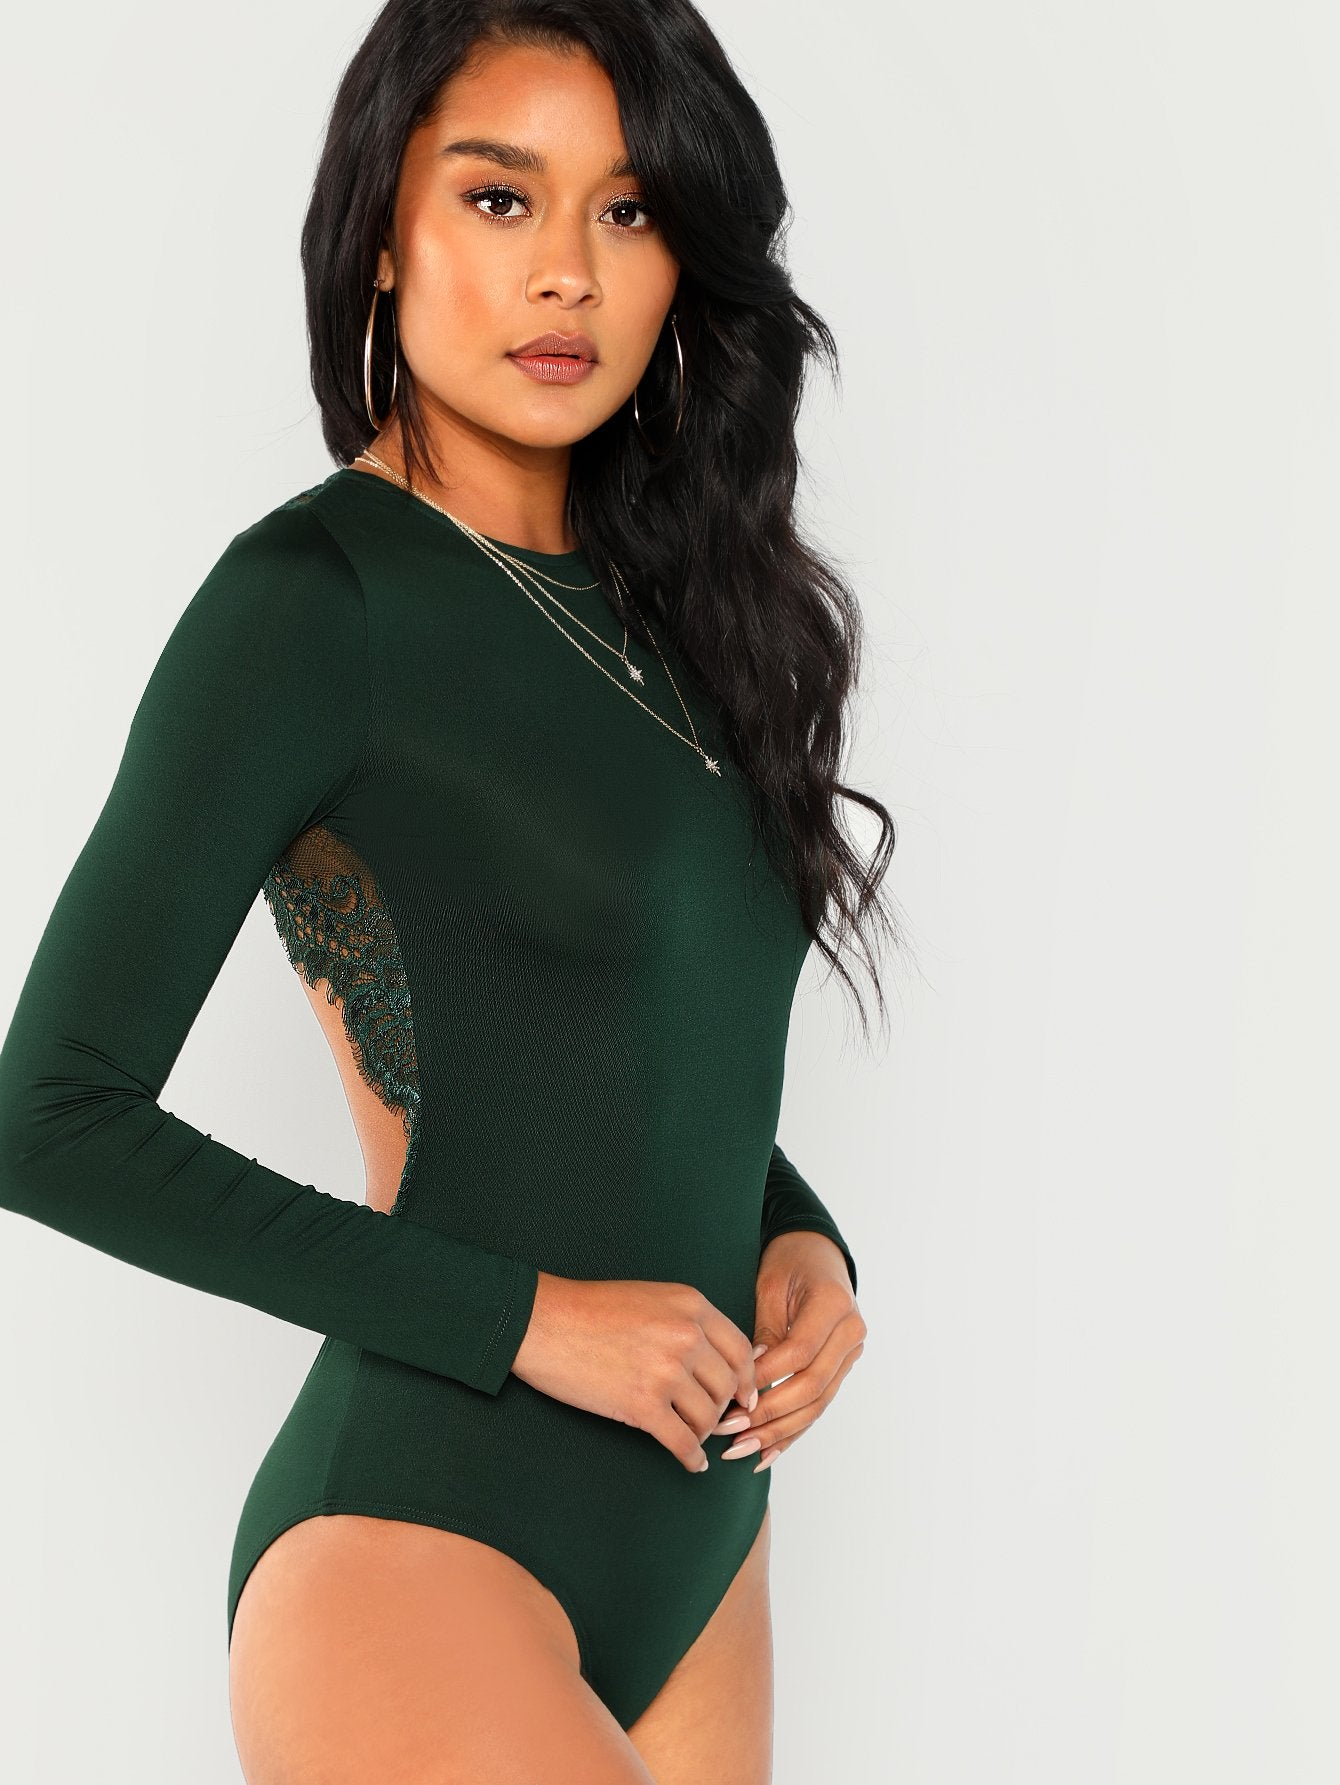 Bodysuits - Women s Green Lace Contrast Backless Skinny Bodysuit at ... 2921e35fc